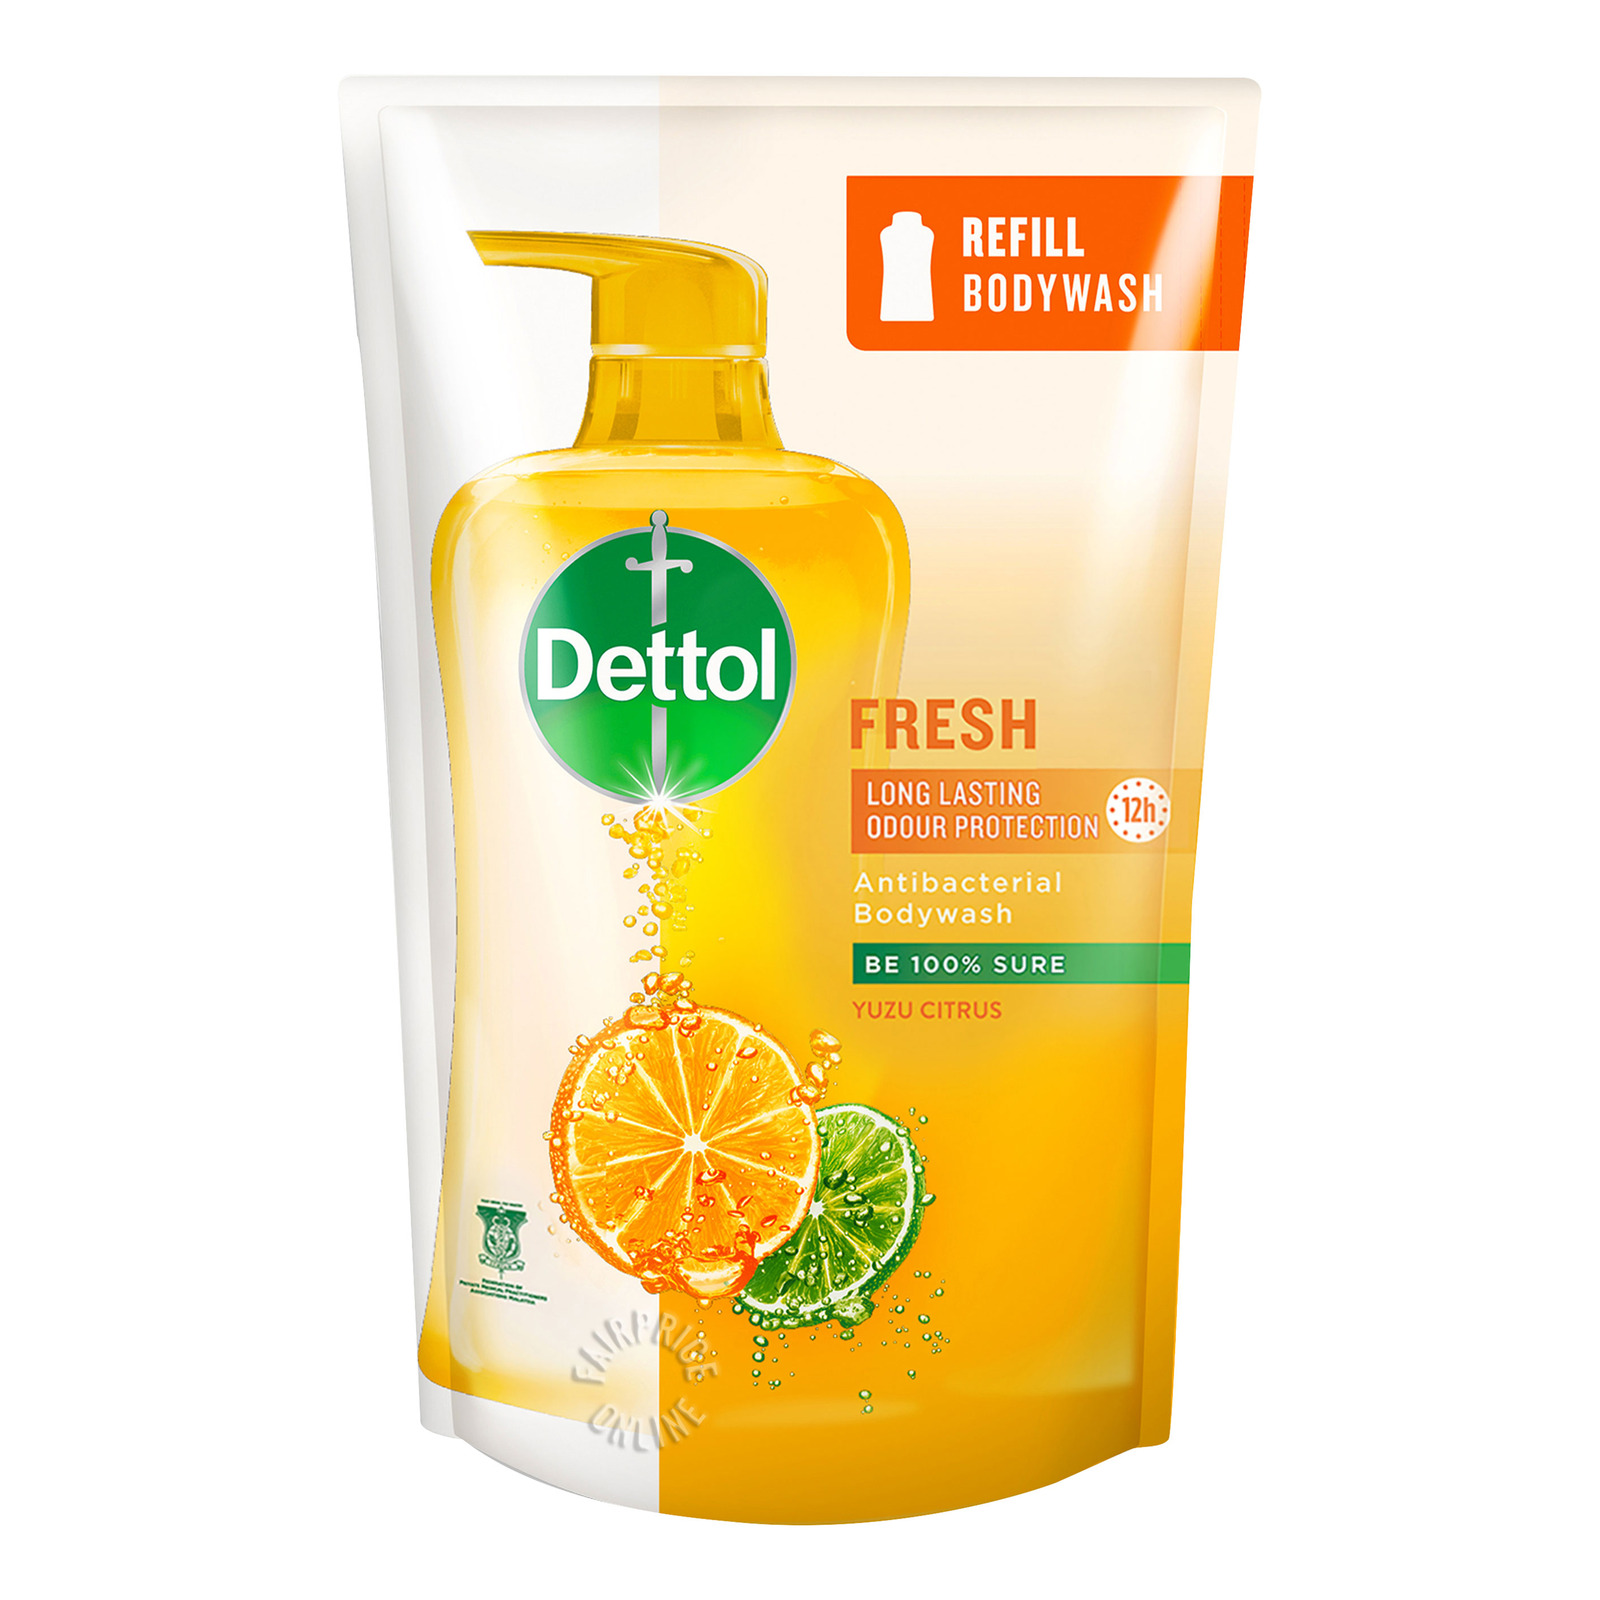 Dettol Anti-Bacterial pH-Balanced Body Wash Refill - Fresh